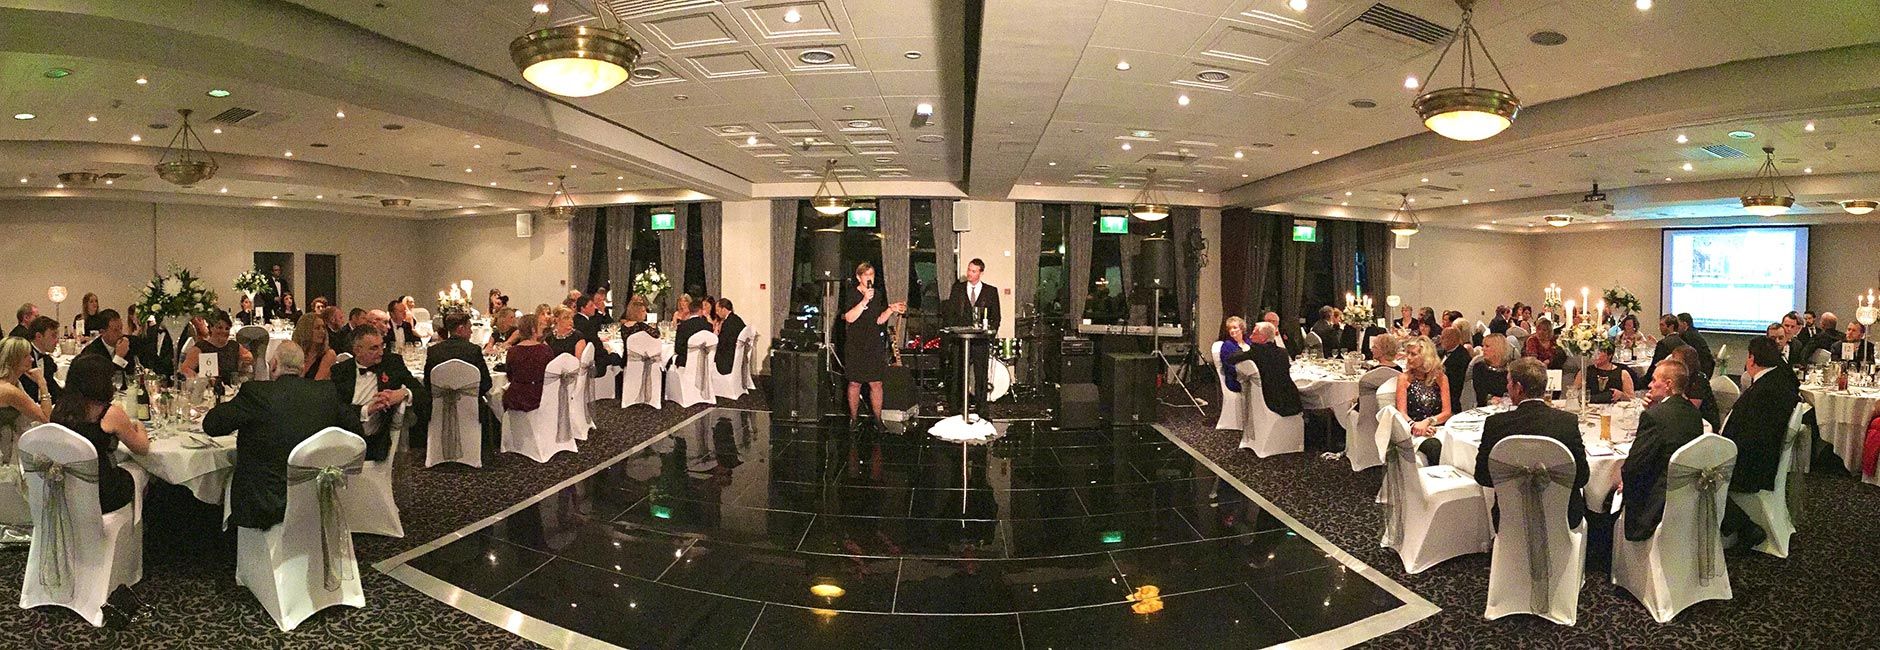 black and white wedding party - evening wedding reception